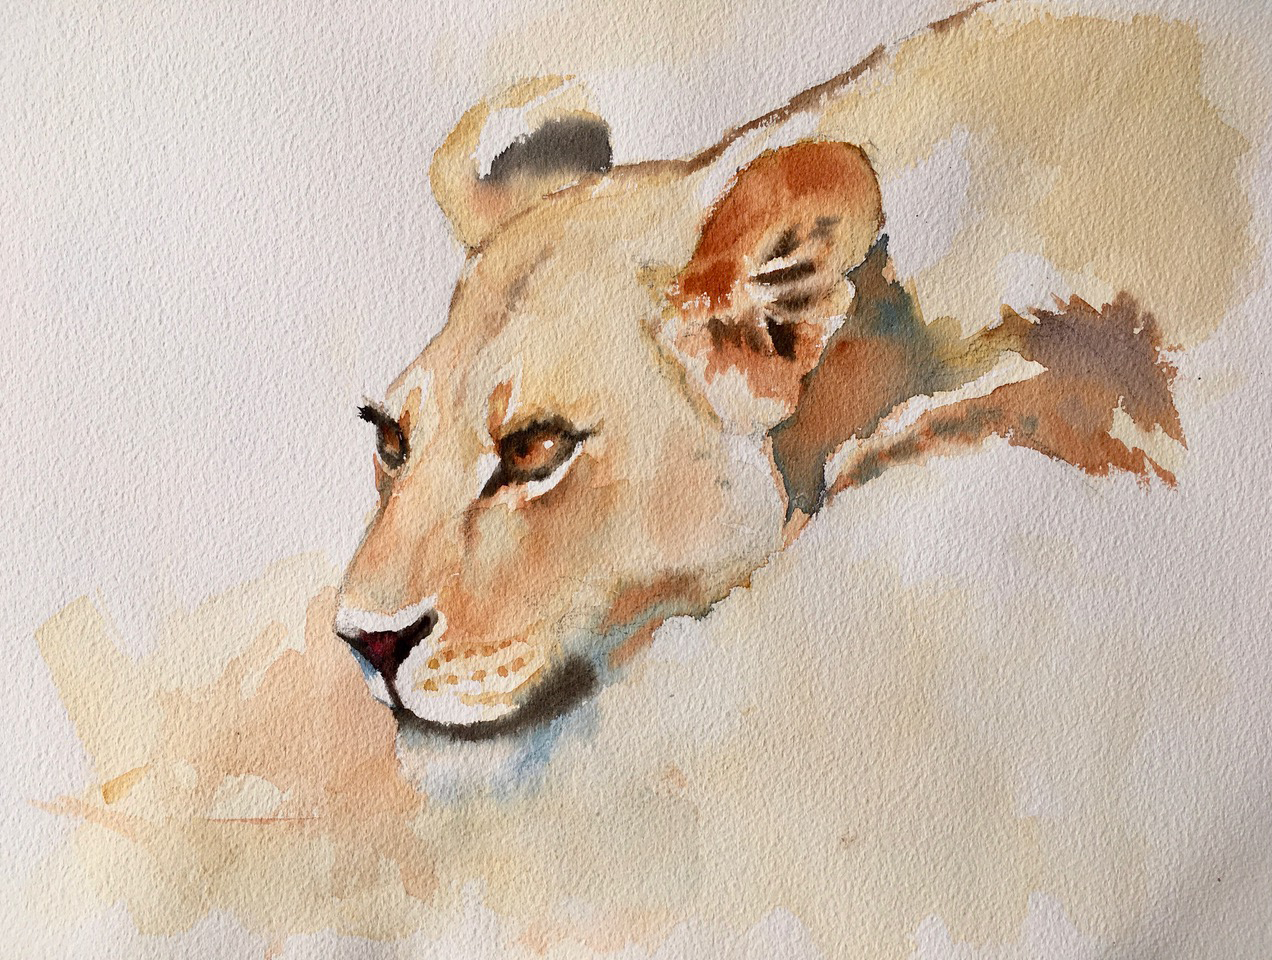 At the water's edge, Kalahari lioness